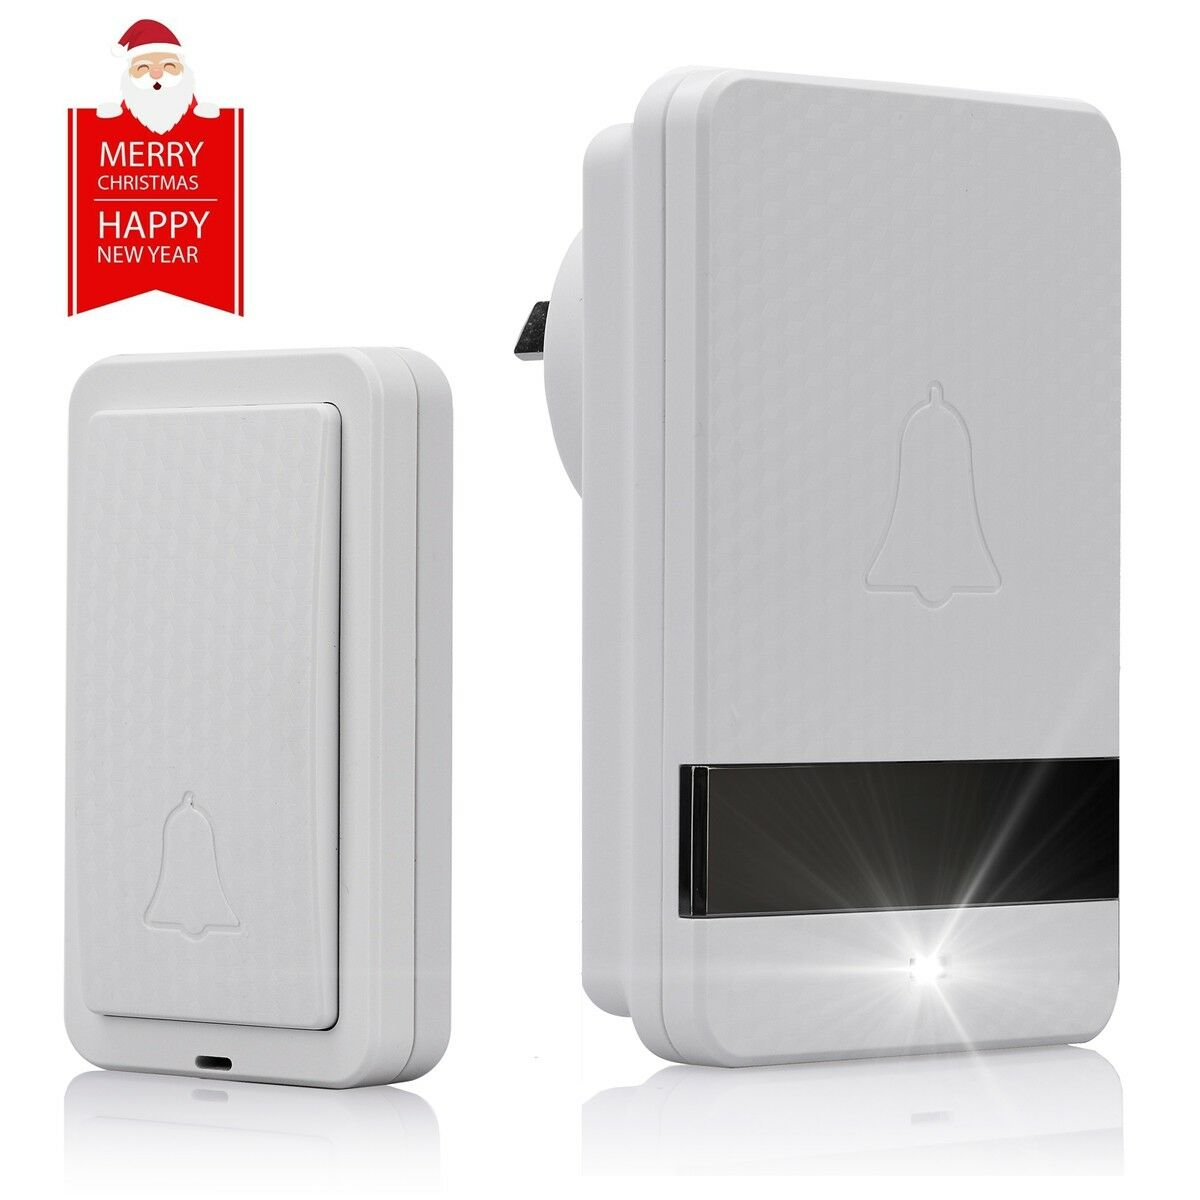 Self-Powered Wireless Doorbell Kit No Battery Required, For Home, Hospital Use